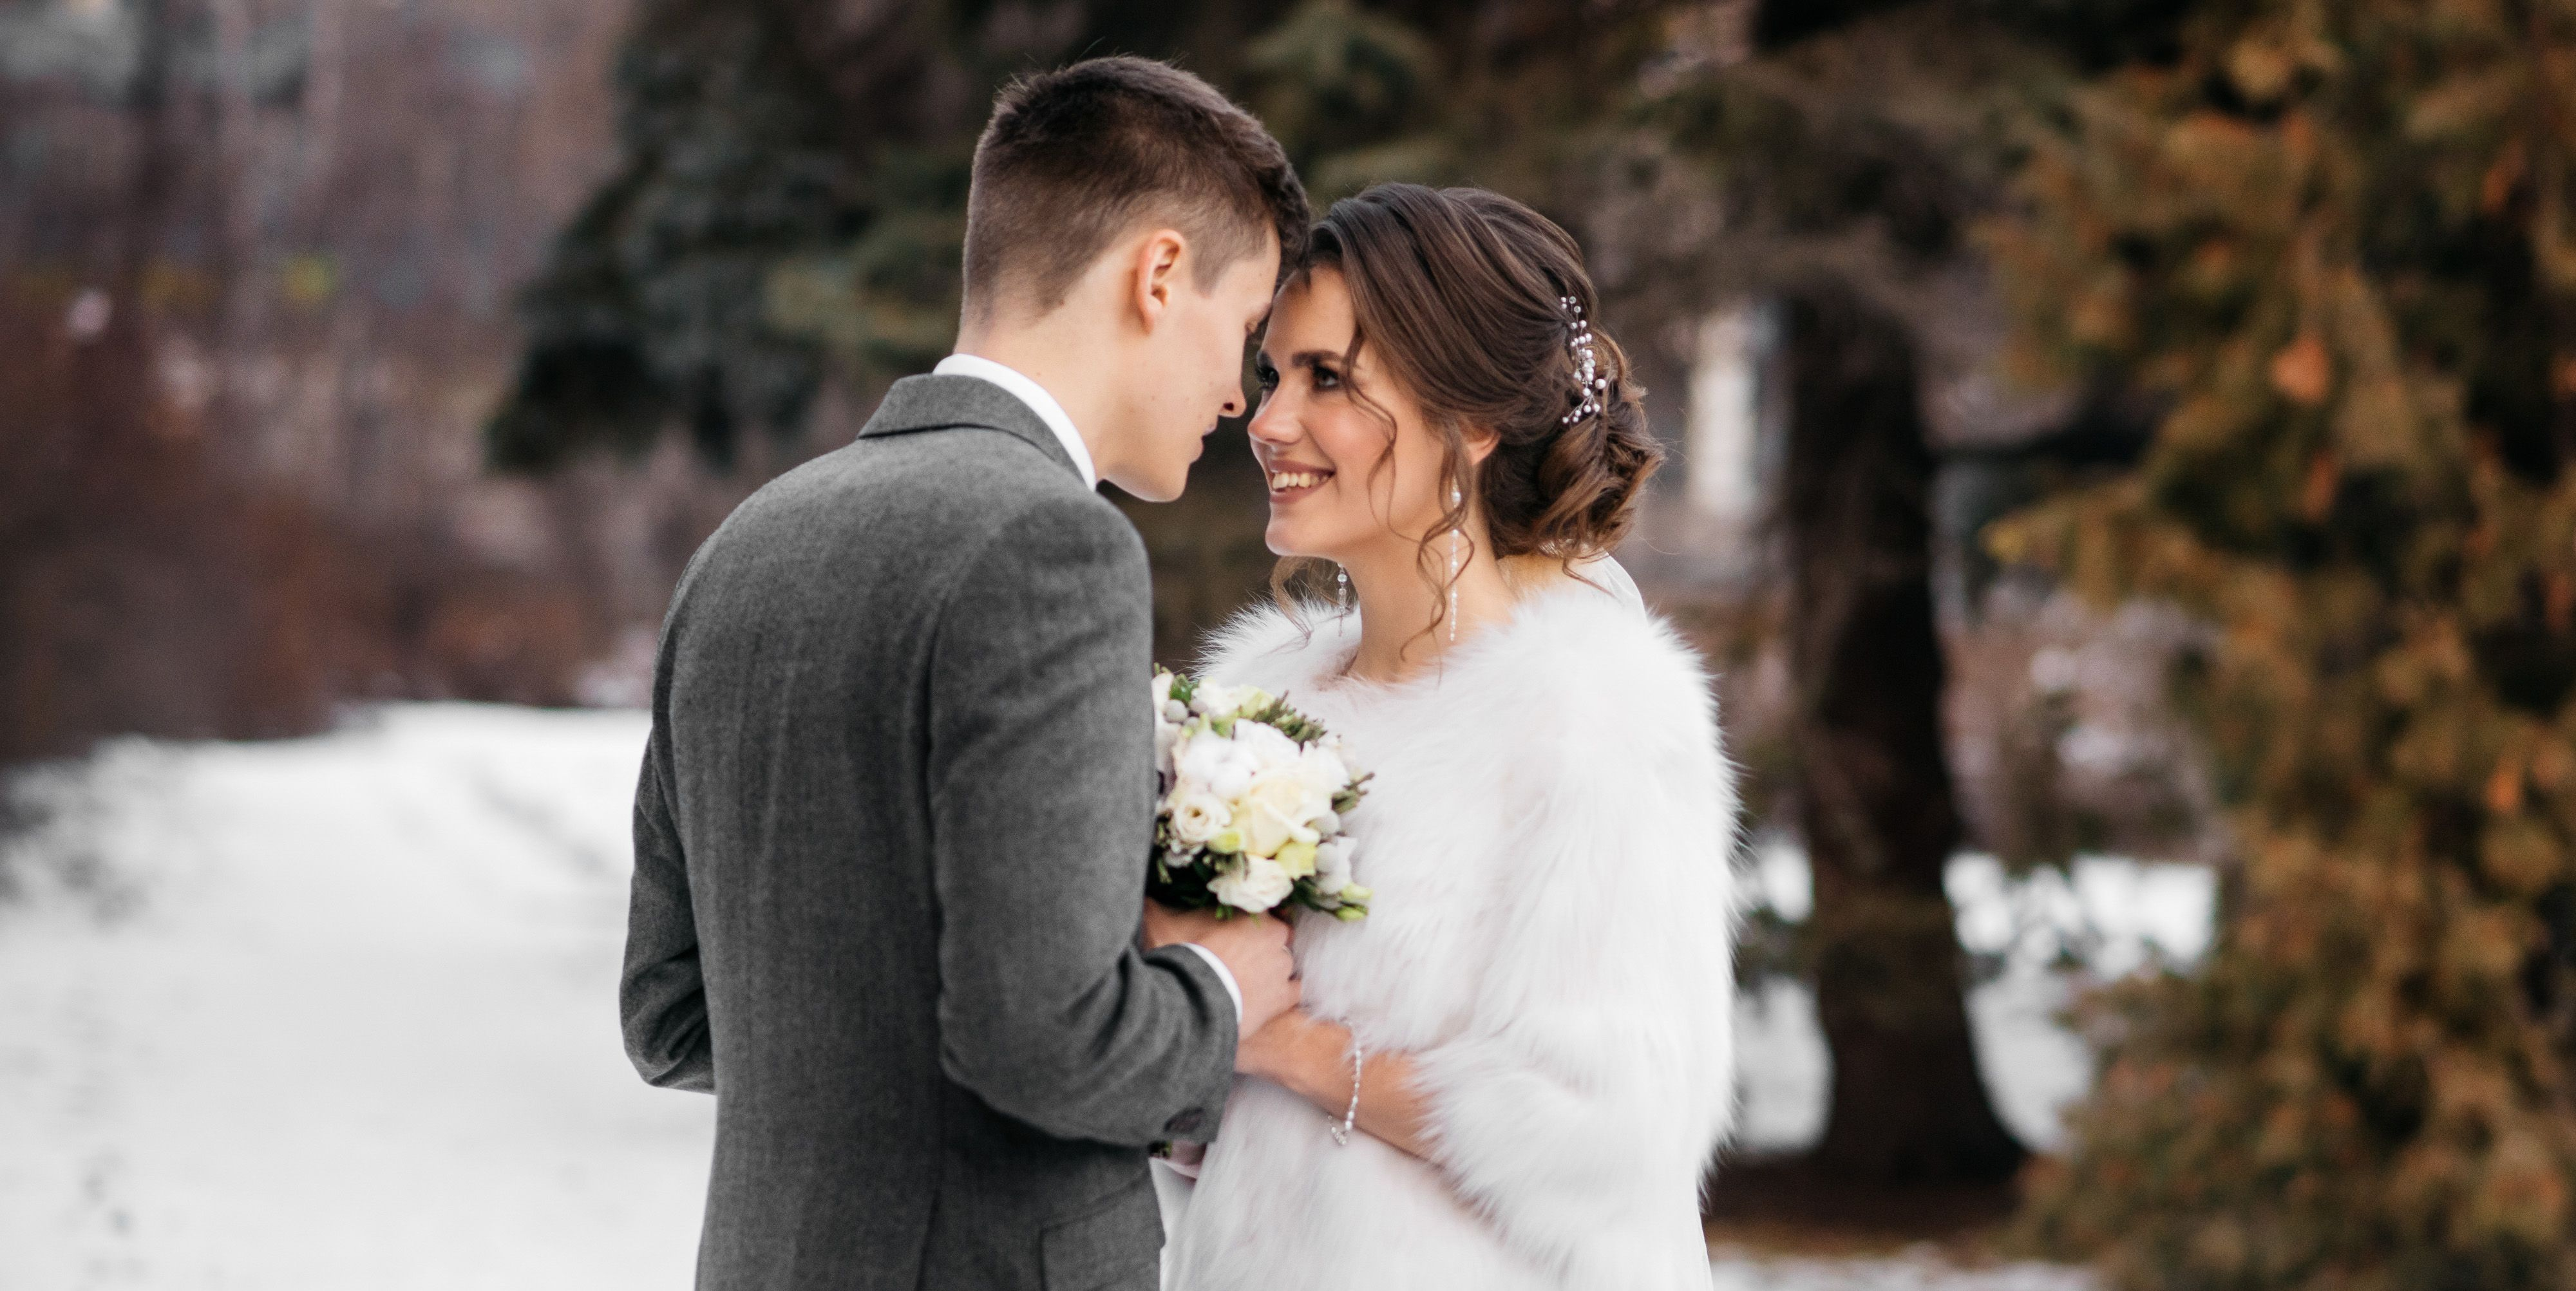 The bride and groom stand in the winter park, huddled together